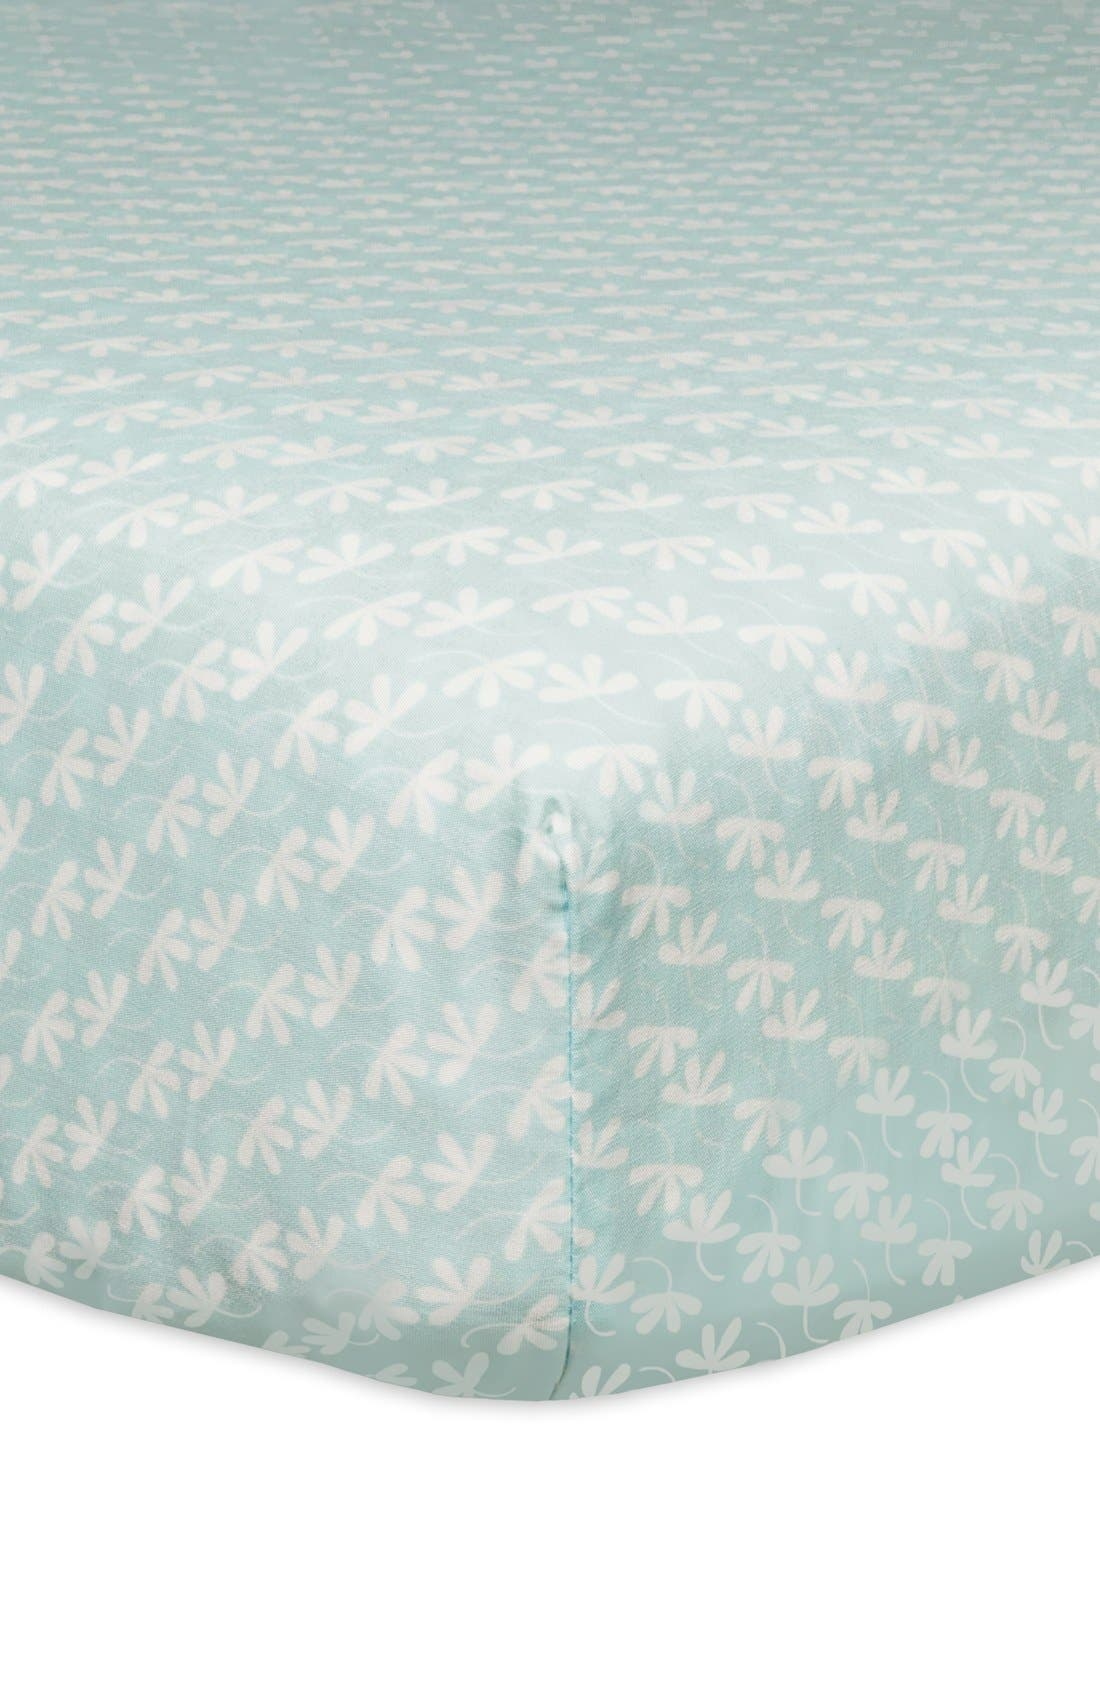 'Flora' Crib Sheet, Crib Skirt, Changing Pad Cover, Blanket & Wall Decals,                             Alternate thumbnail 2, color,                             Blue